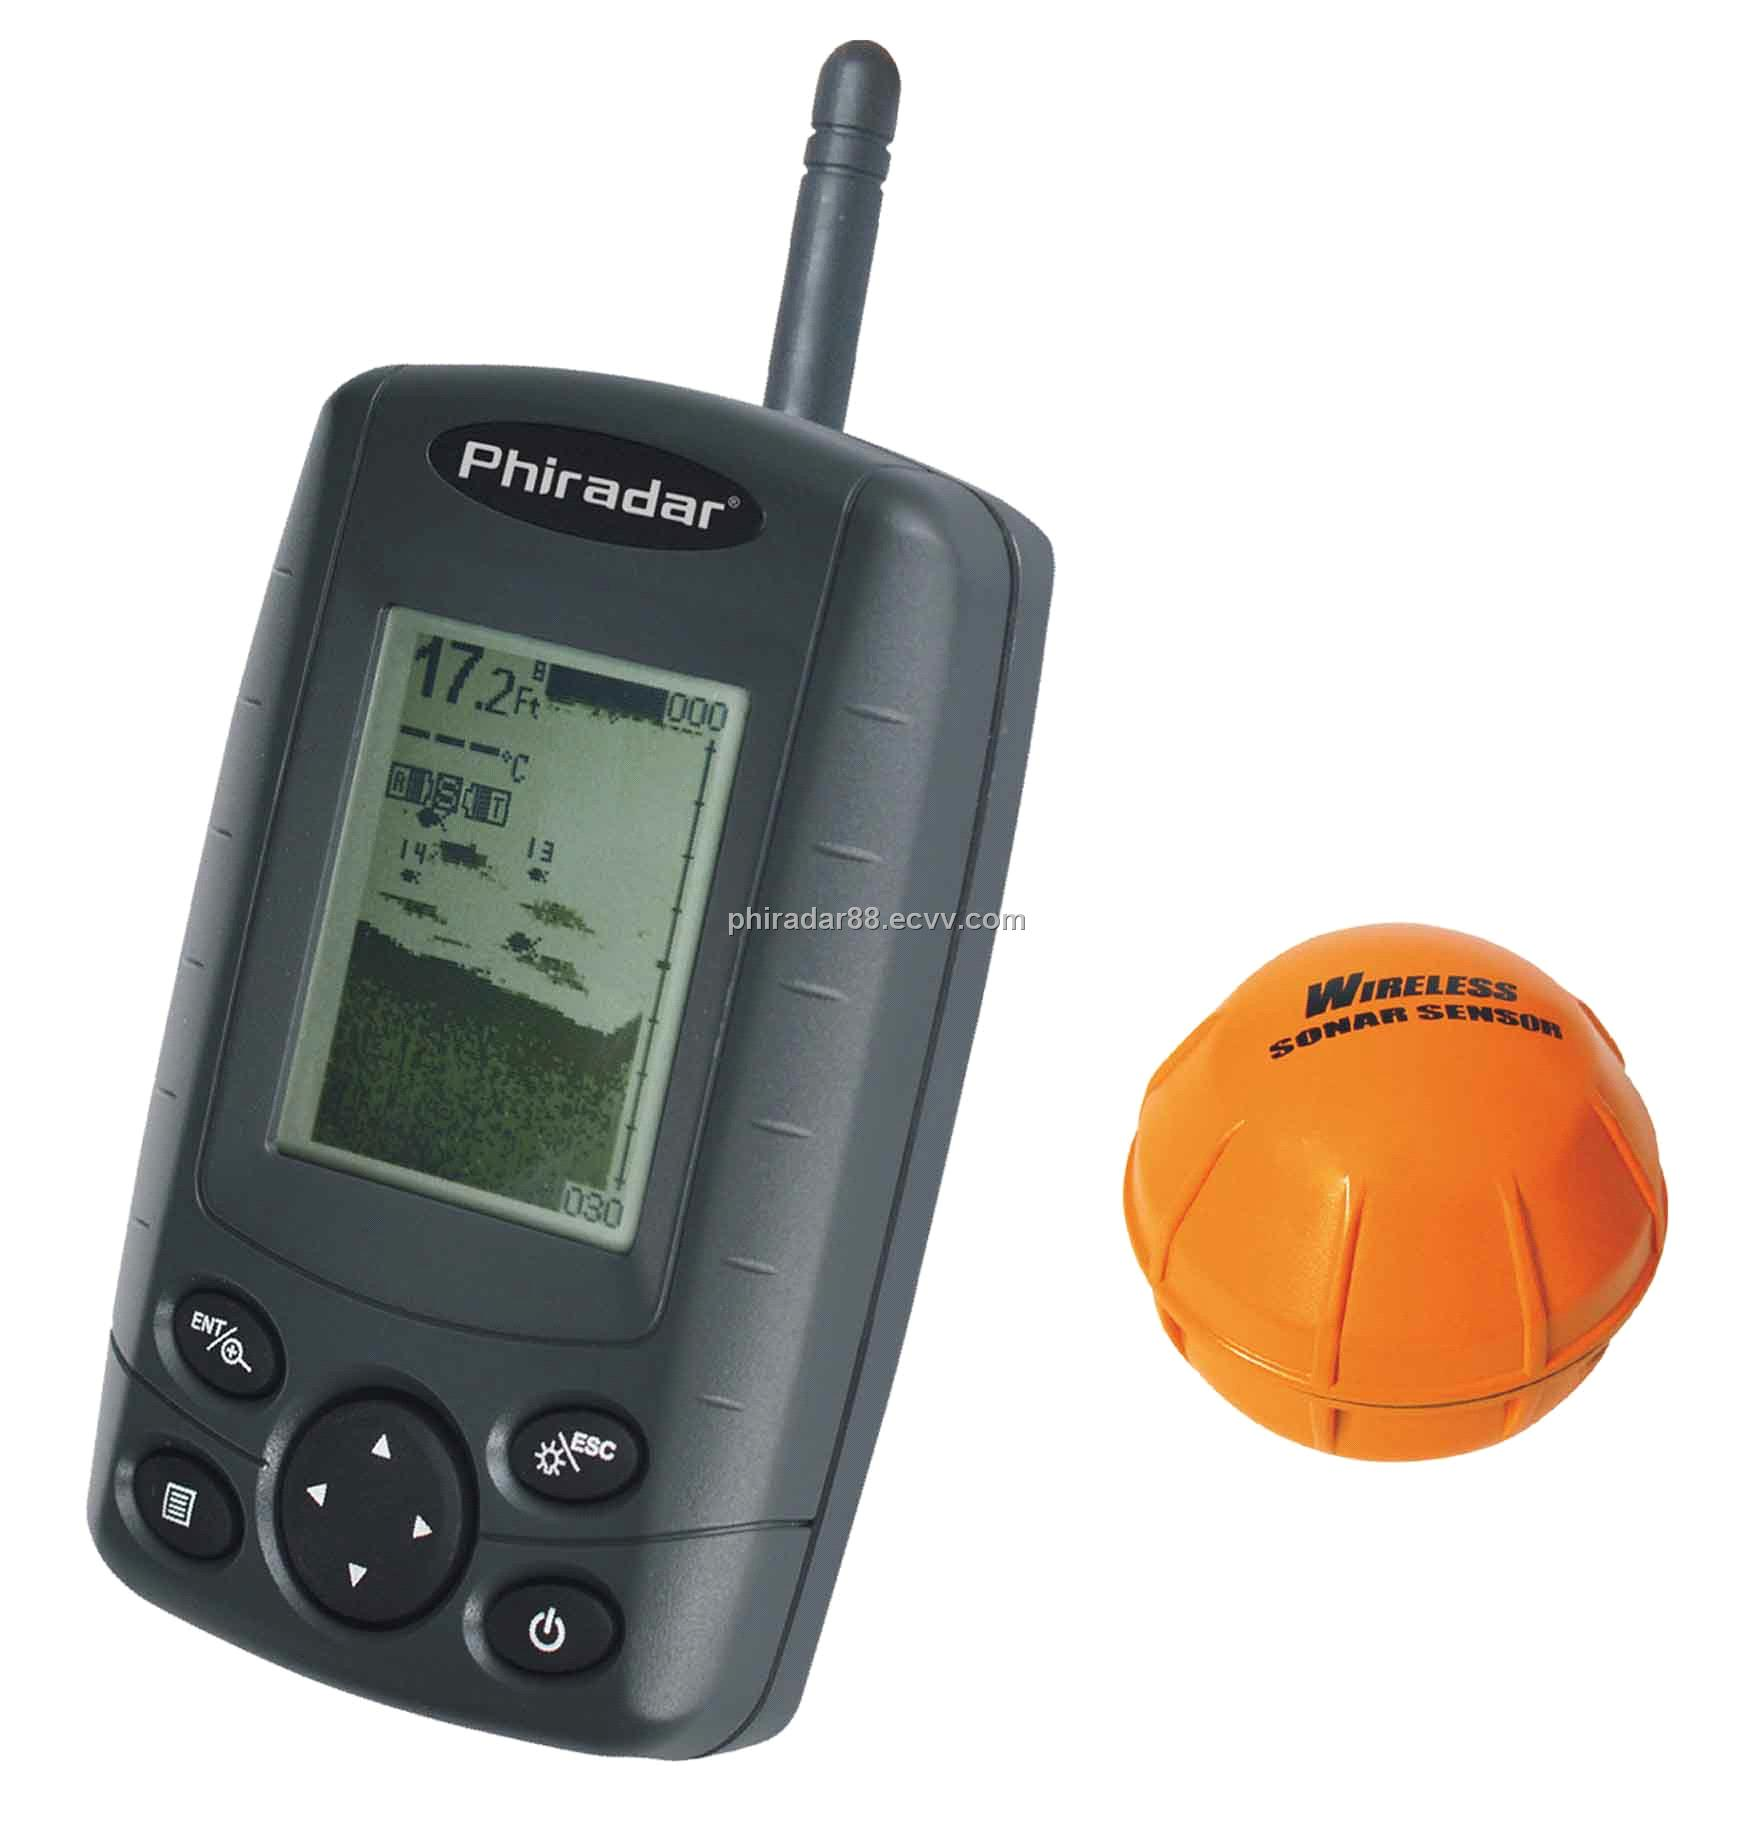 wireless fish finder with 4 levels grayscale ff168w (ff168w, Fish Finder